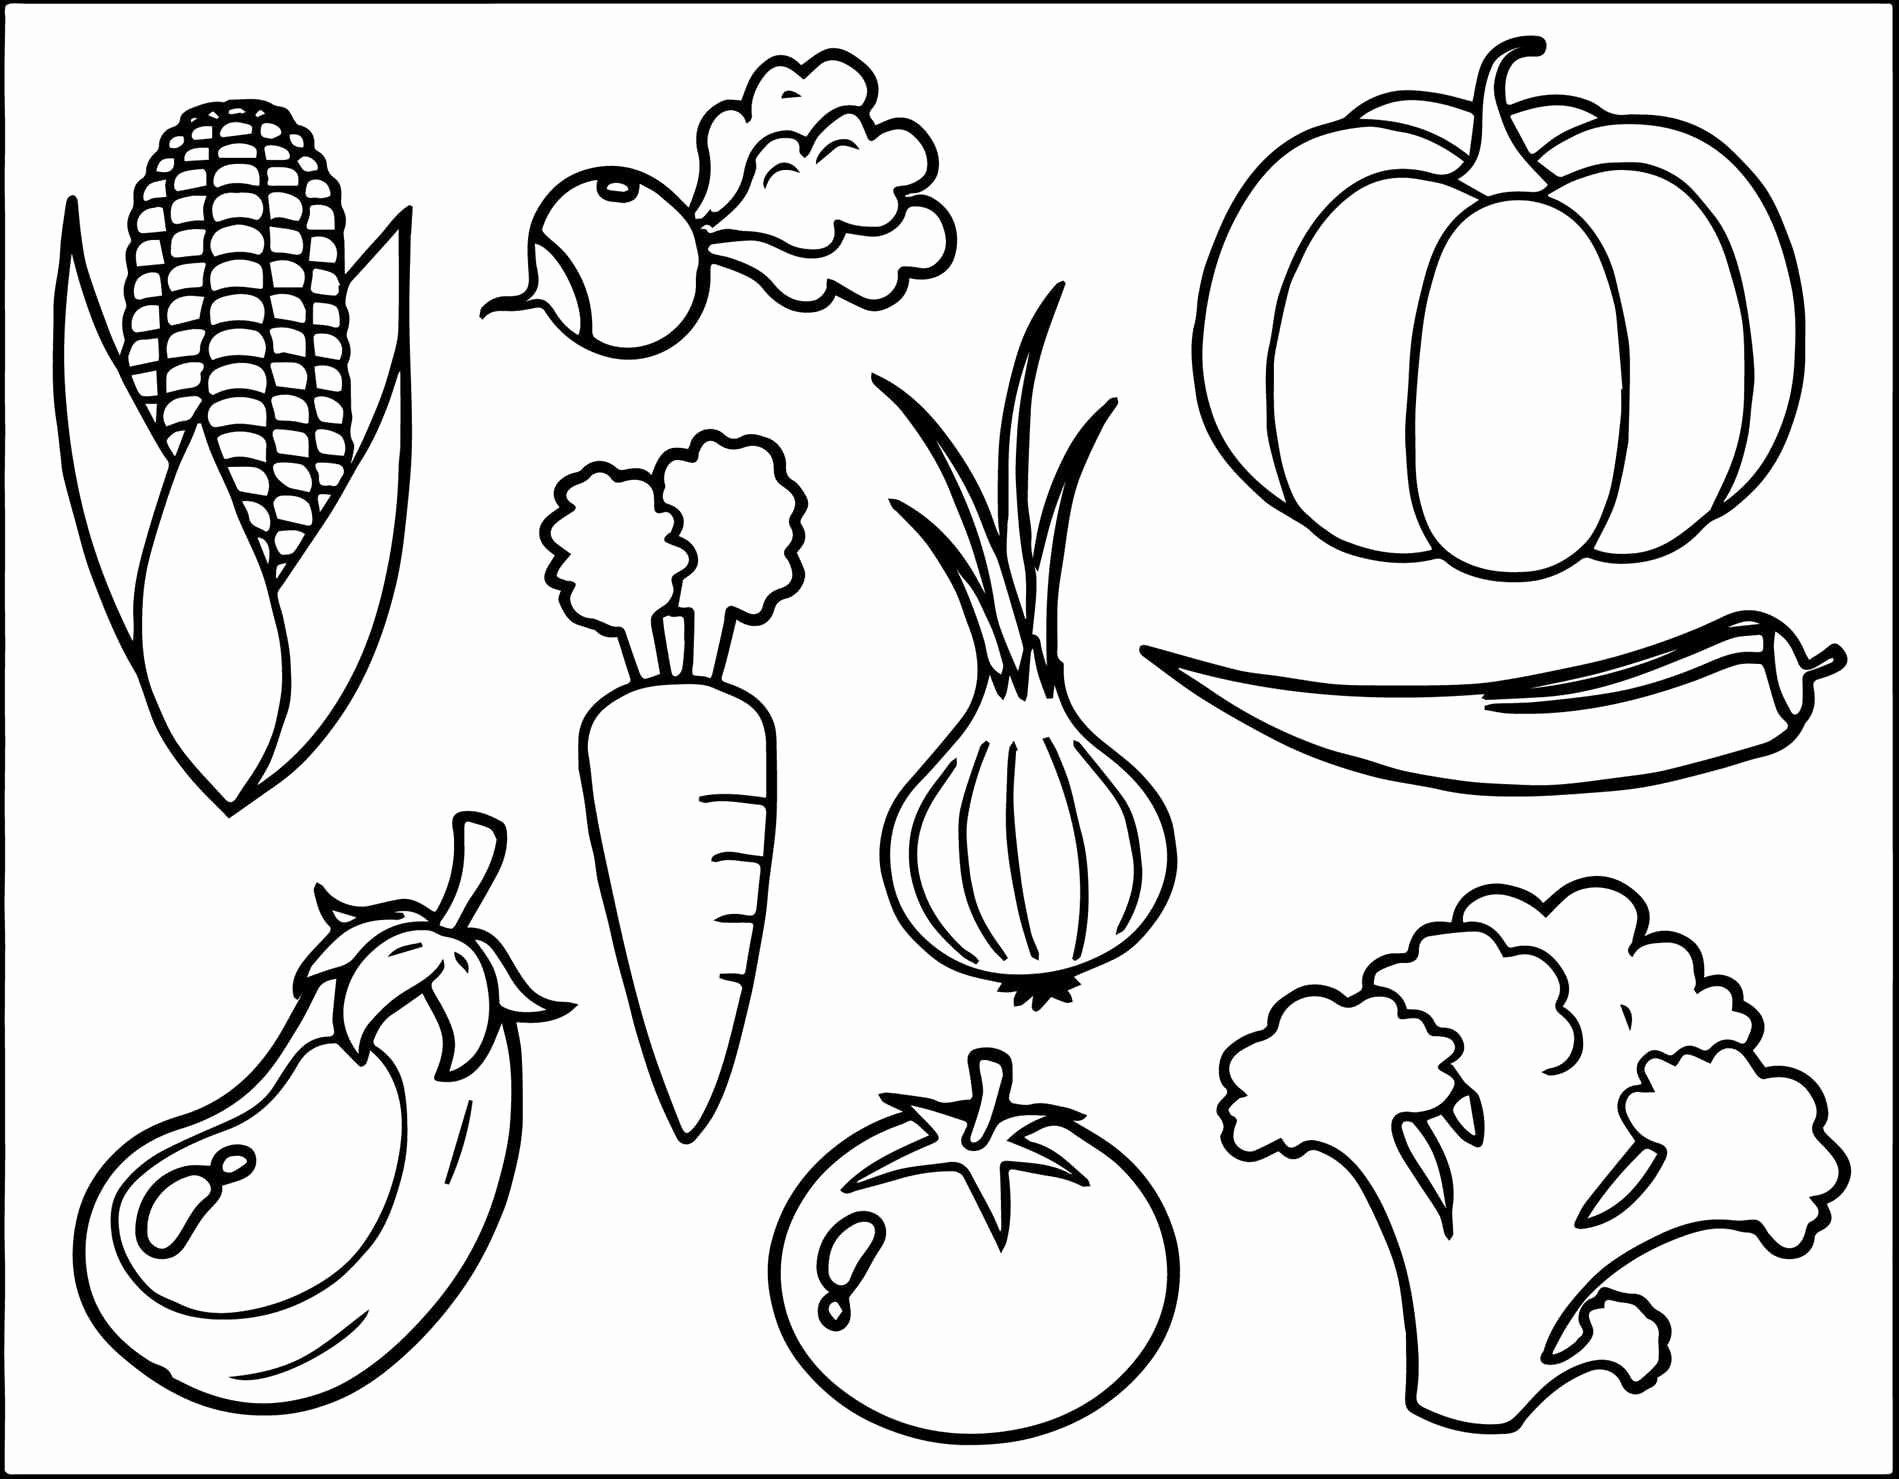 - Fruits And Vegetable Coloring Books Pdf For Kids- Fruit Coloring